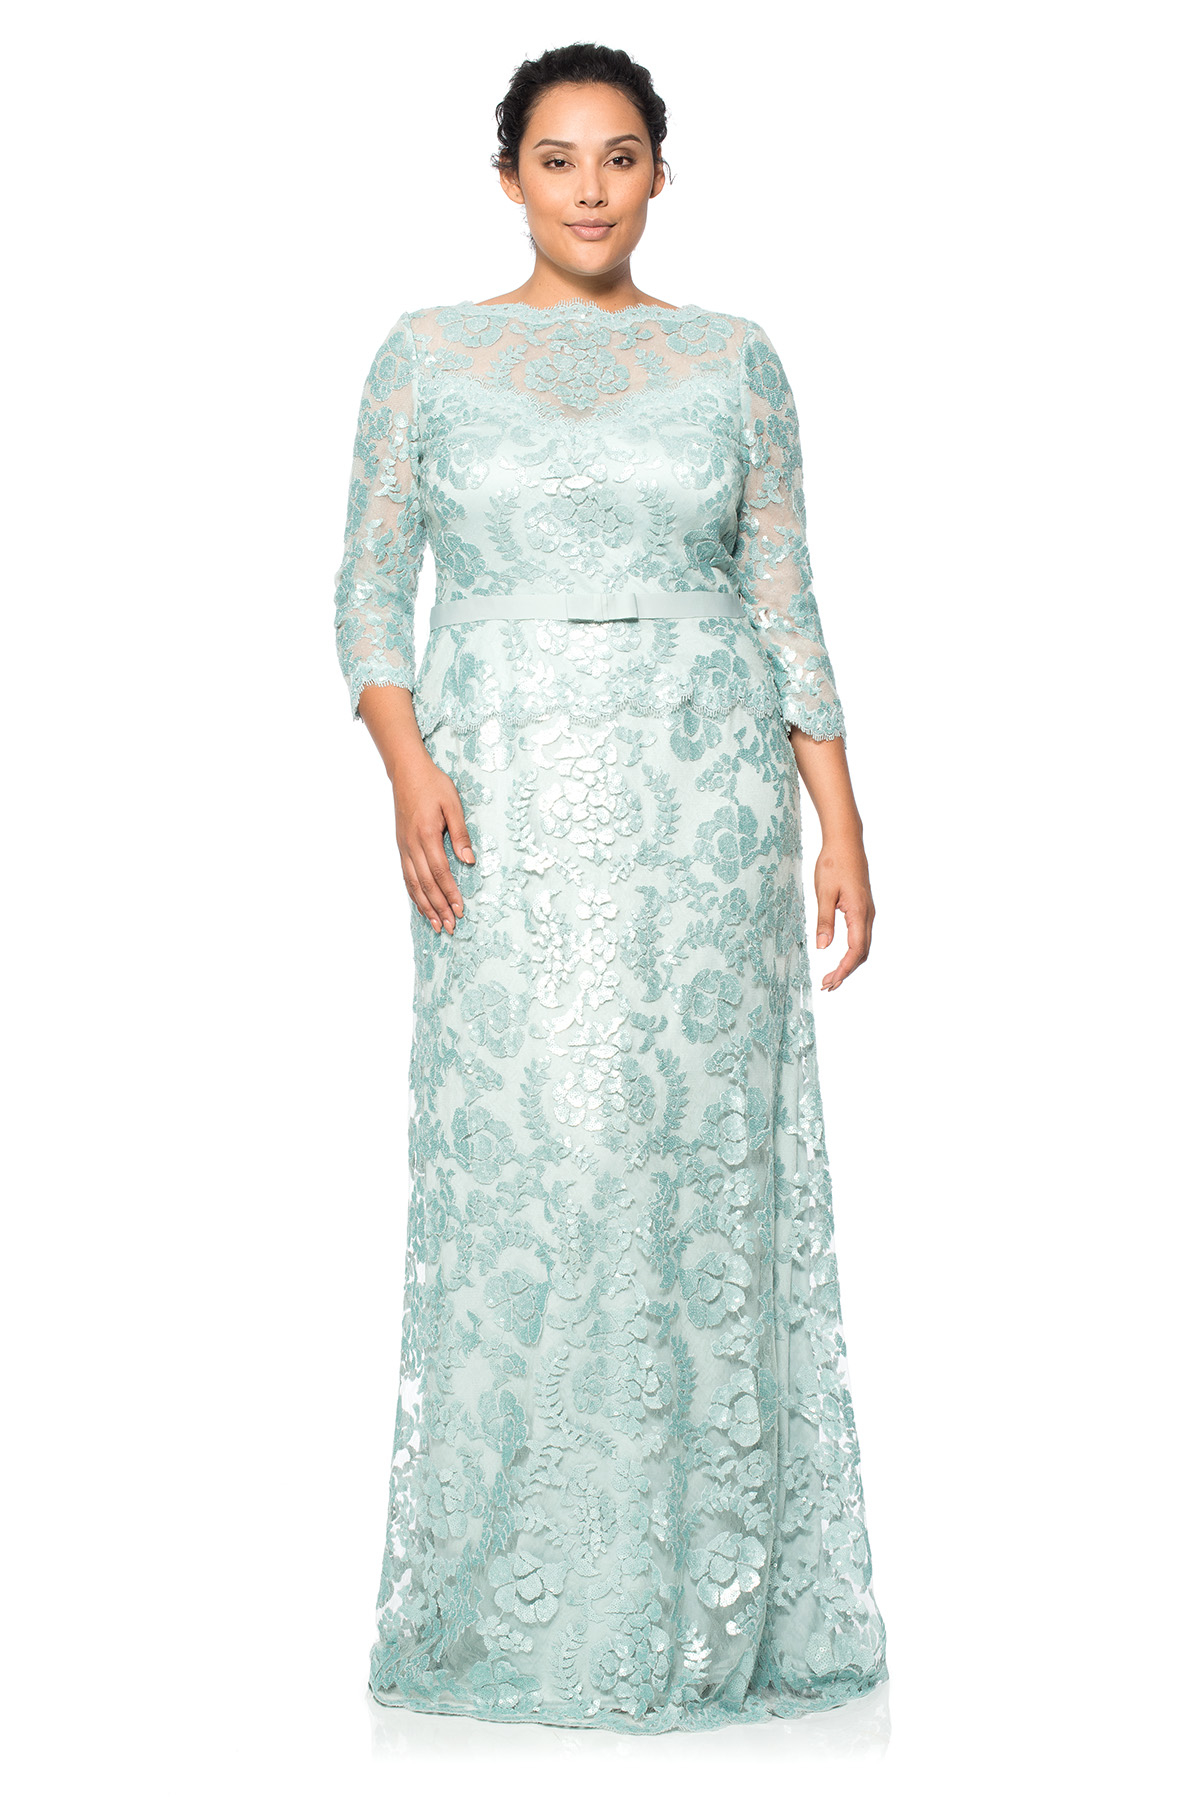 Lyst - Tadashi Shoji Paillette Embroidered Lace 3⁄4 Sleeve Gown ...